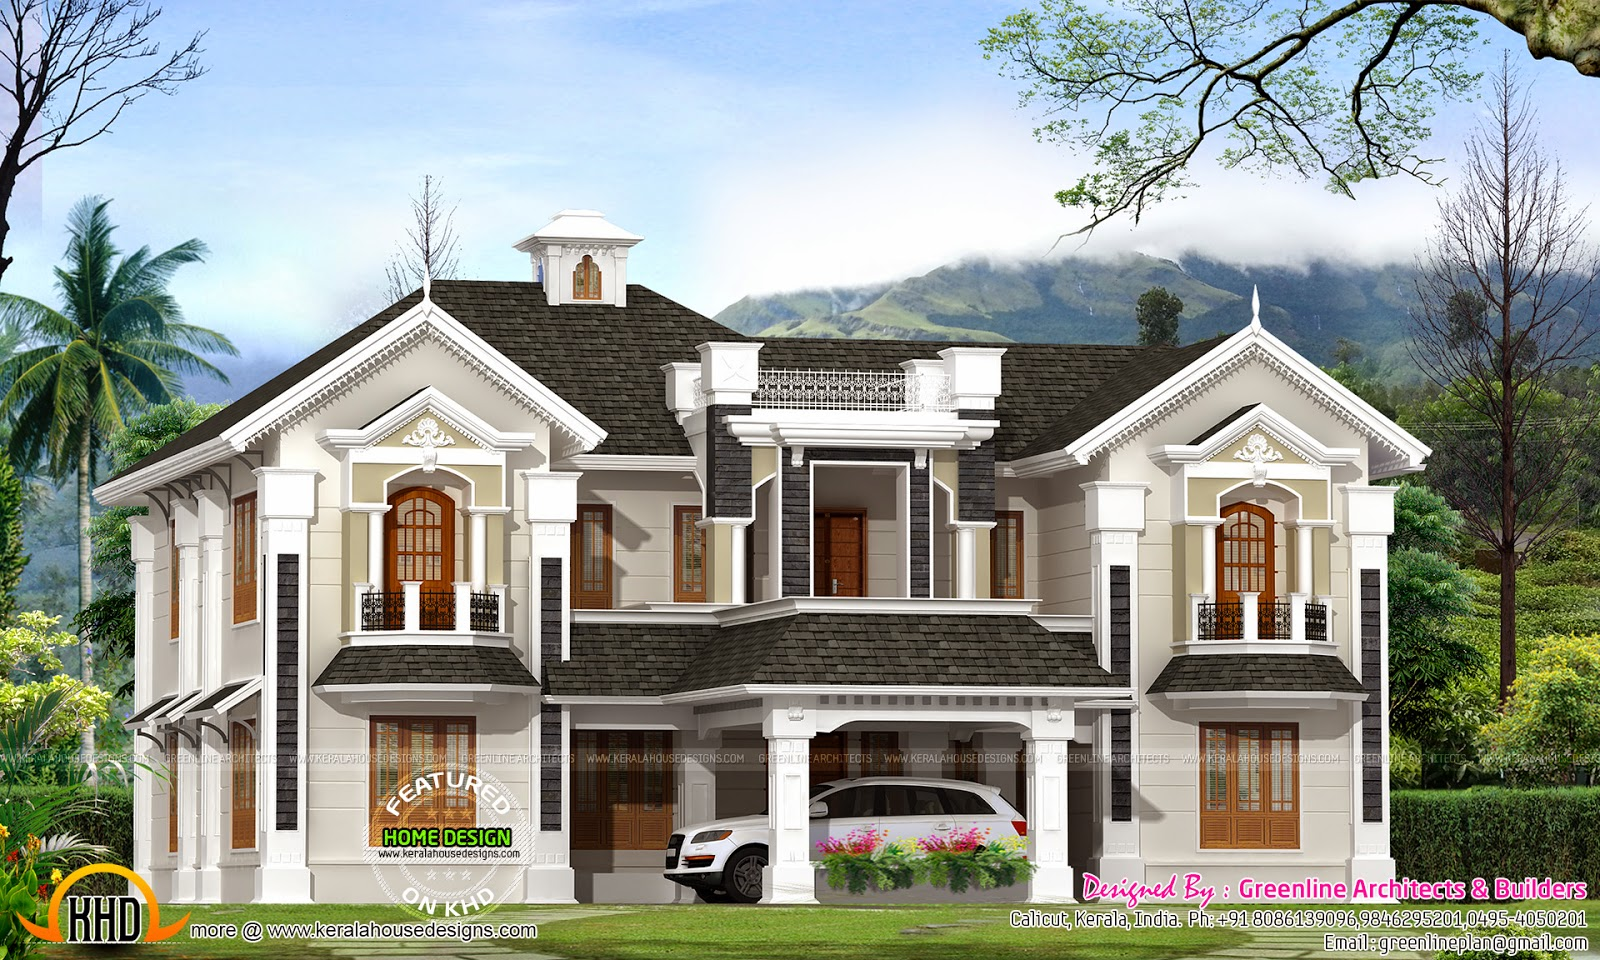 Colonial style house in kerala kerala home design and for Home designs kerala style